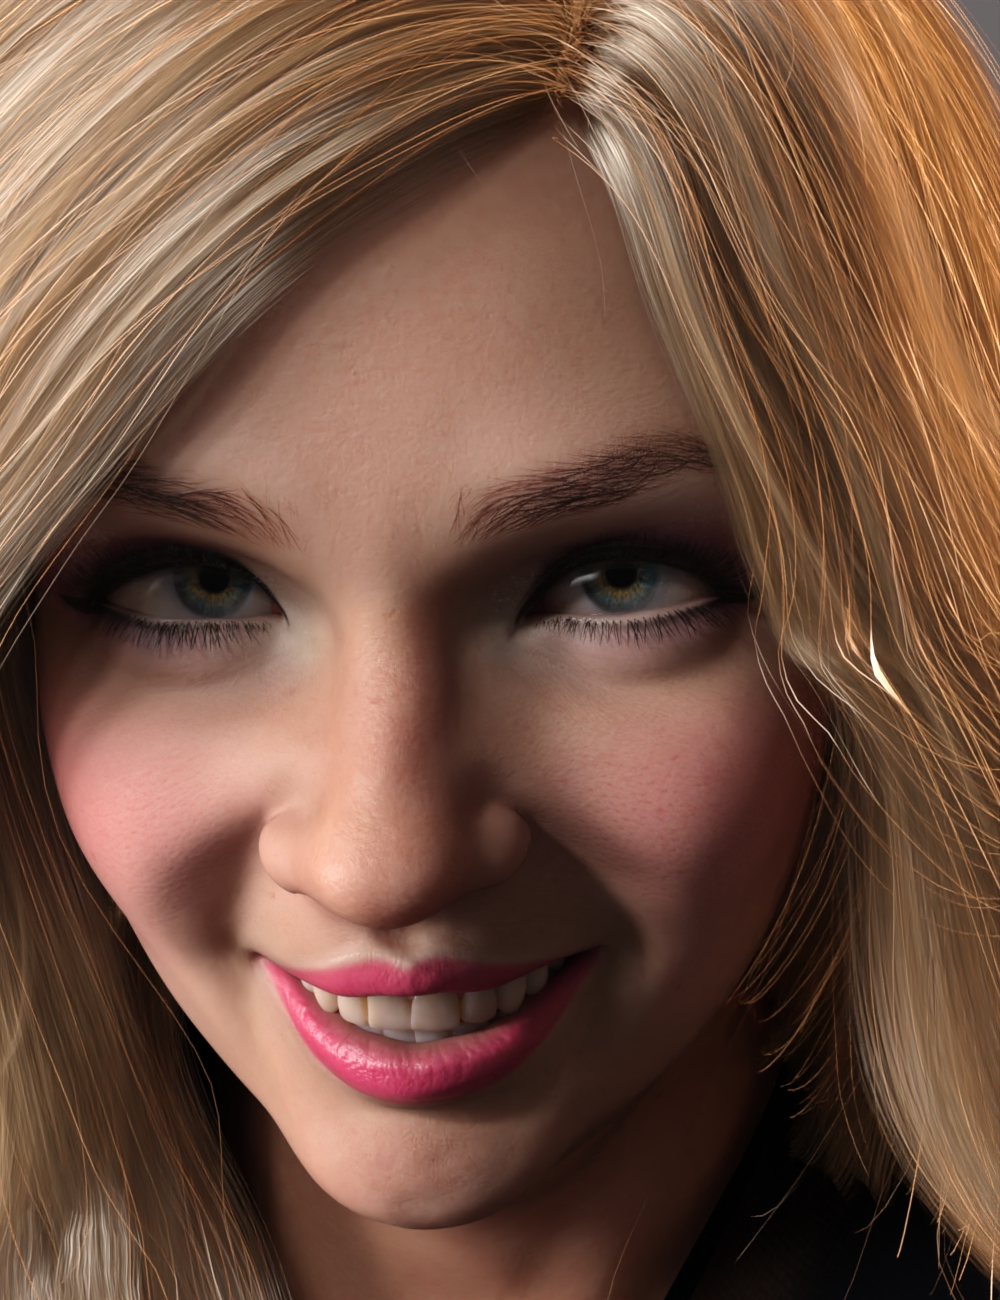 Alternative Shapes for Coral 8.1 by: AliveSheCried, 3D Models by Daz 3D